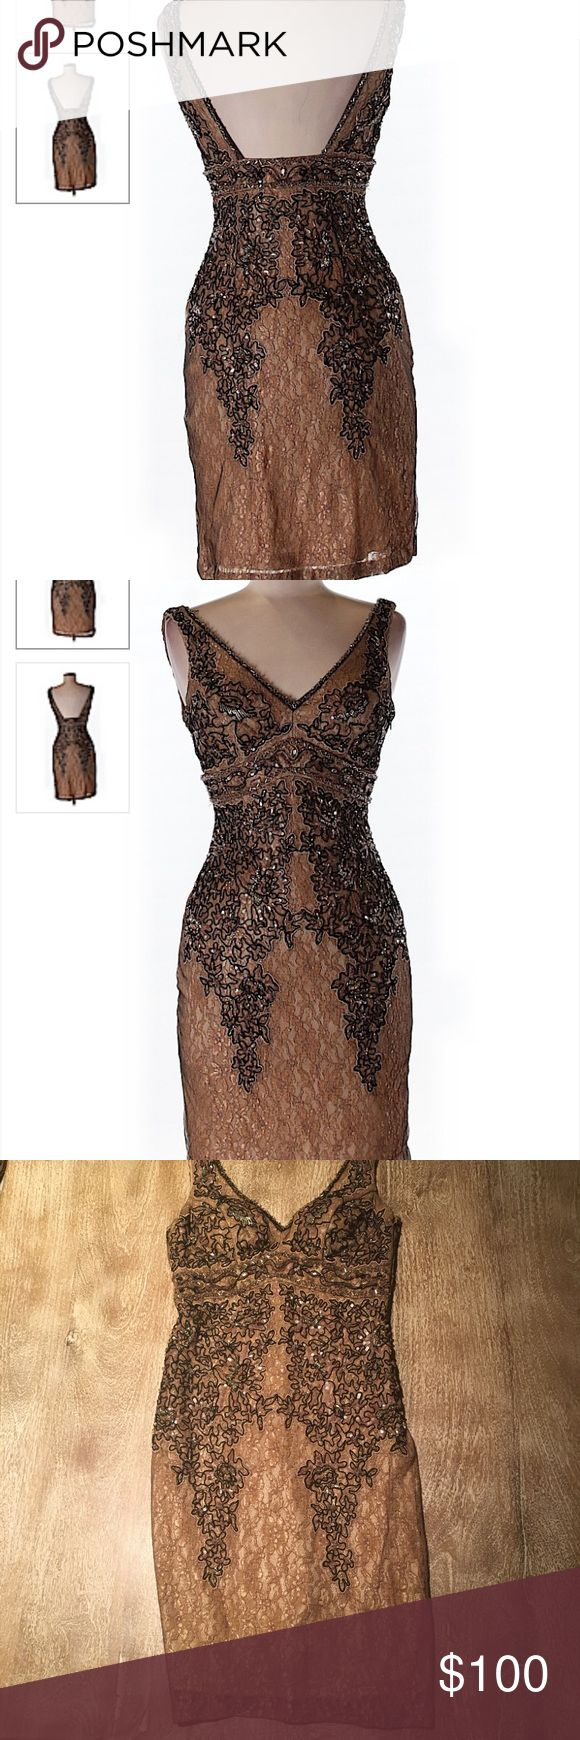 """Sue Wong Brown Embroidered Beaded Dress, size 0 Sue Wong brown/bronze colored dress with beautiful embellishments. Intricate beading and sequins. Size 0. Molded cups. Concealed side zip. Perfect for a gatsby themed party. Bust is approx 24"""". Dress does have some stretch. Lined. Approx 34-35"""" in length lying flat. Excellent condition. I have inspected the dress and see no noticeable flaws. Sue Wong Dresses"""